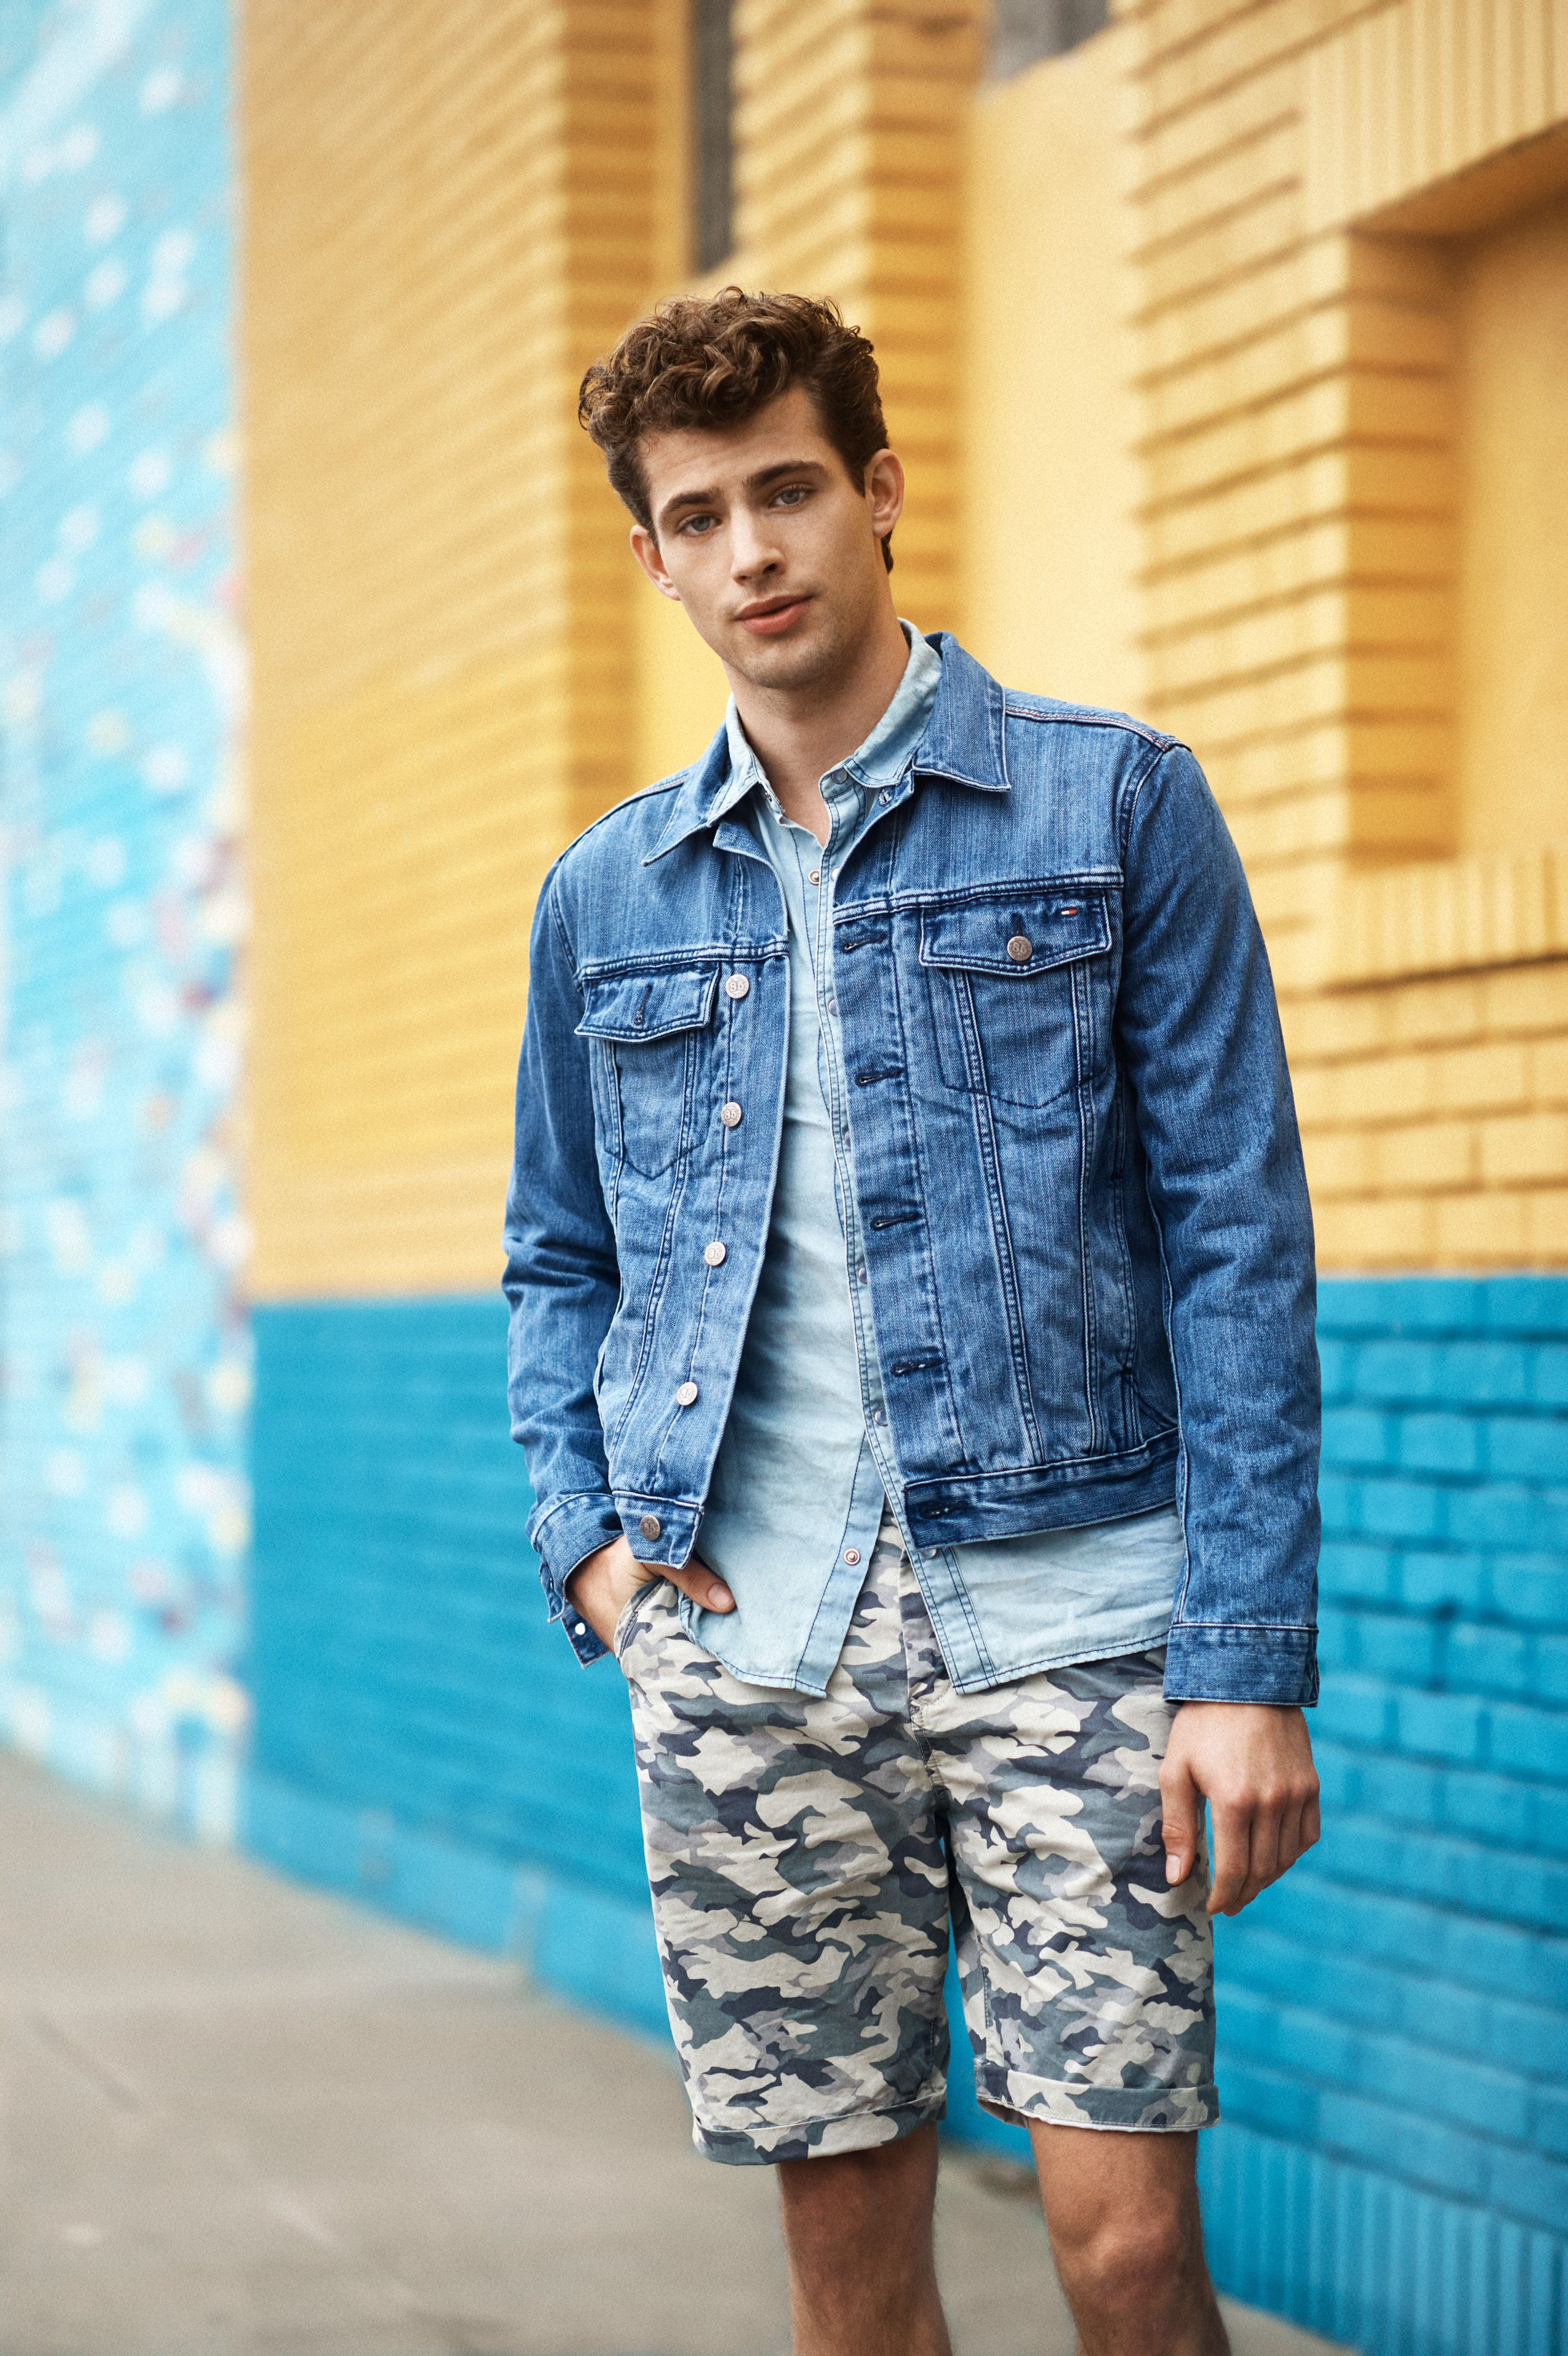 26eec19c3bca6 Summer's camo shorts look perfect when worn with a chambray shirt and a  great denim jacket #TommyHilfiger